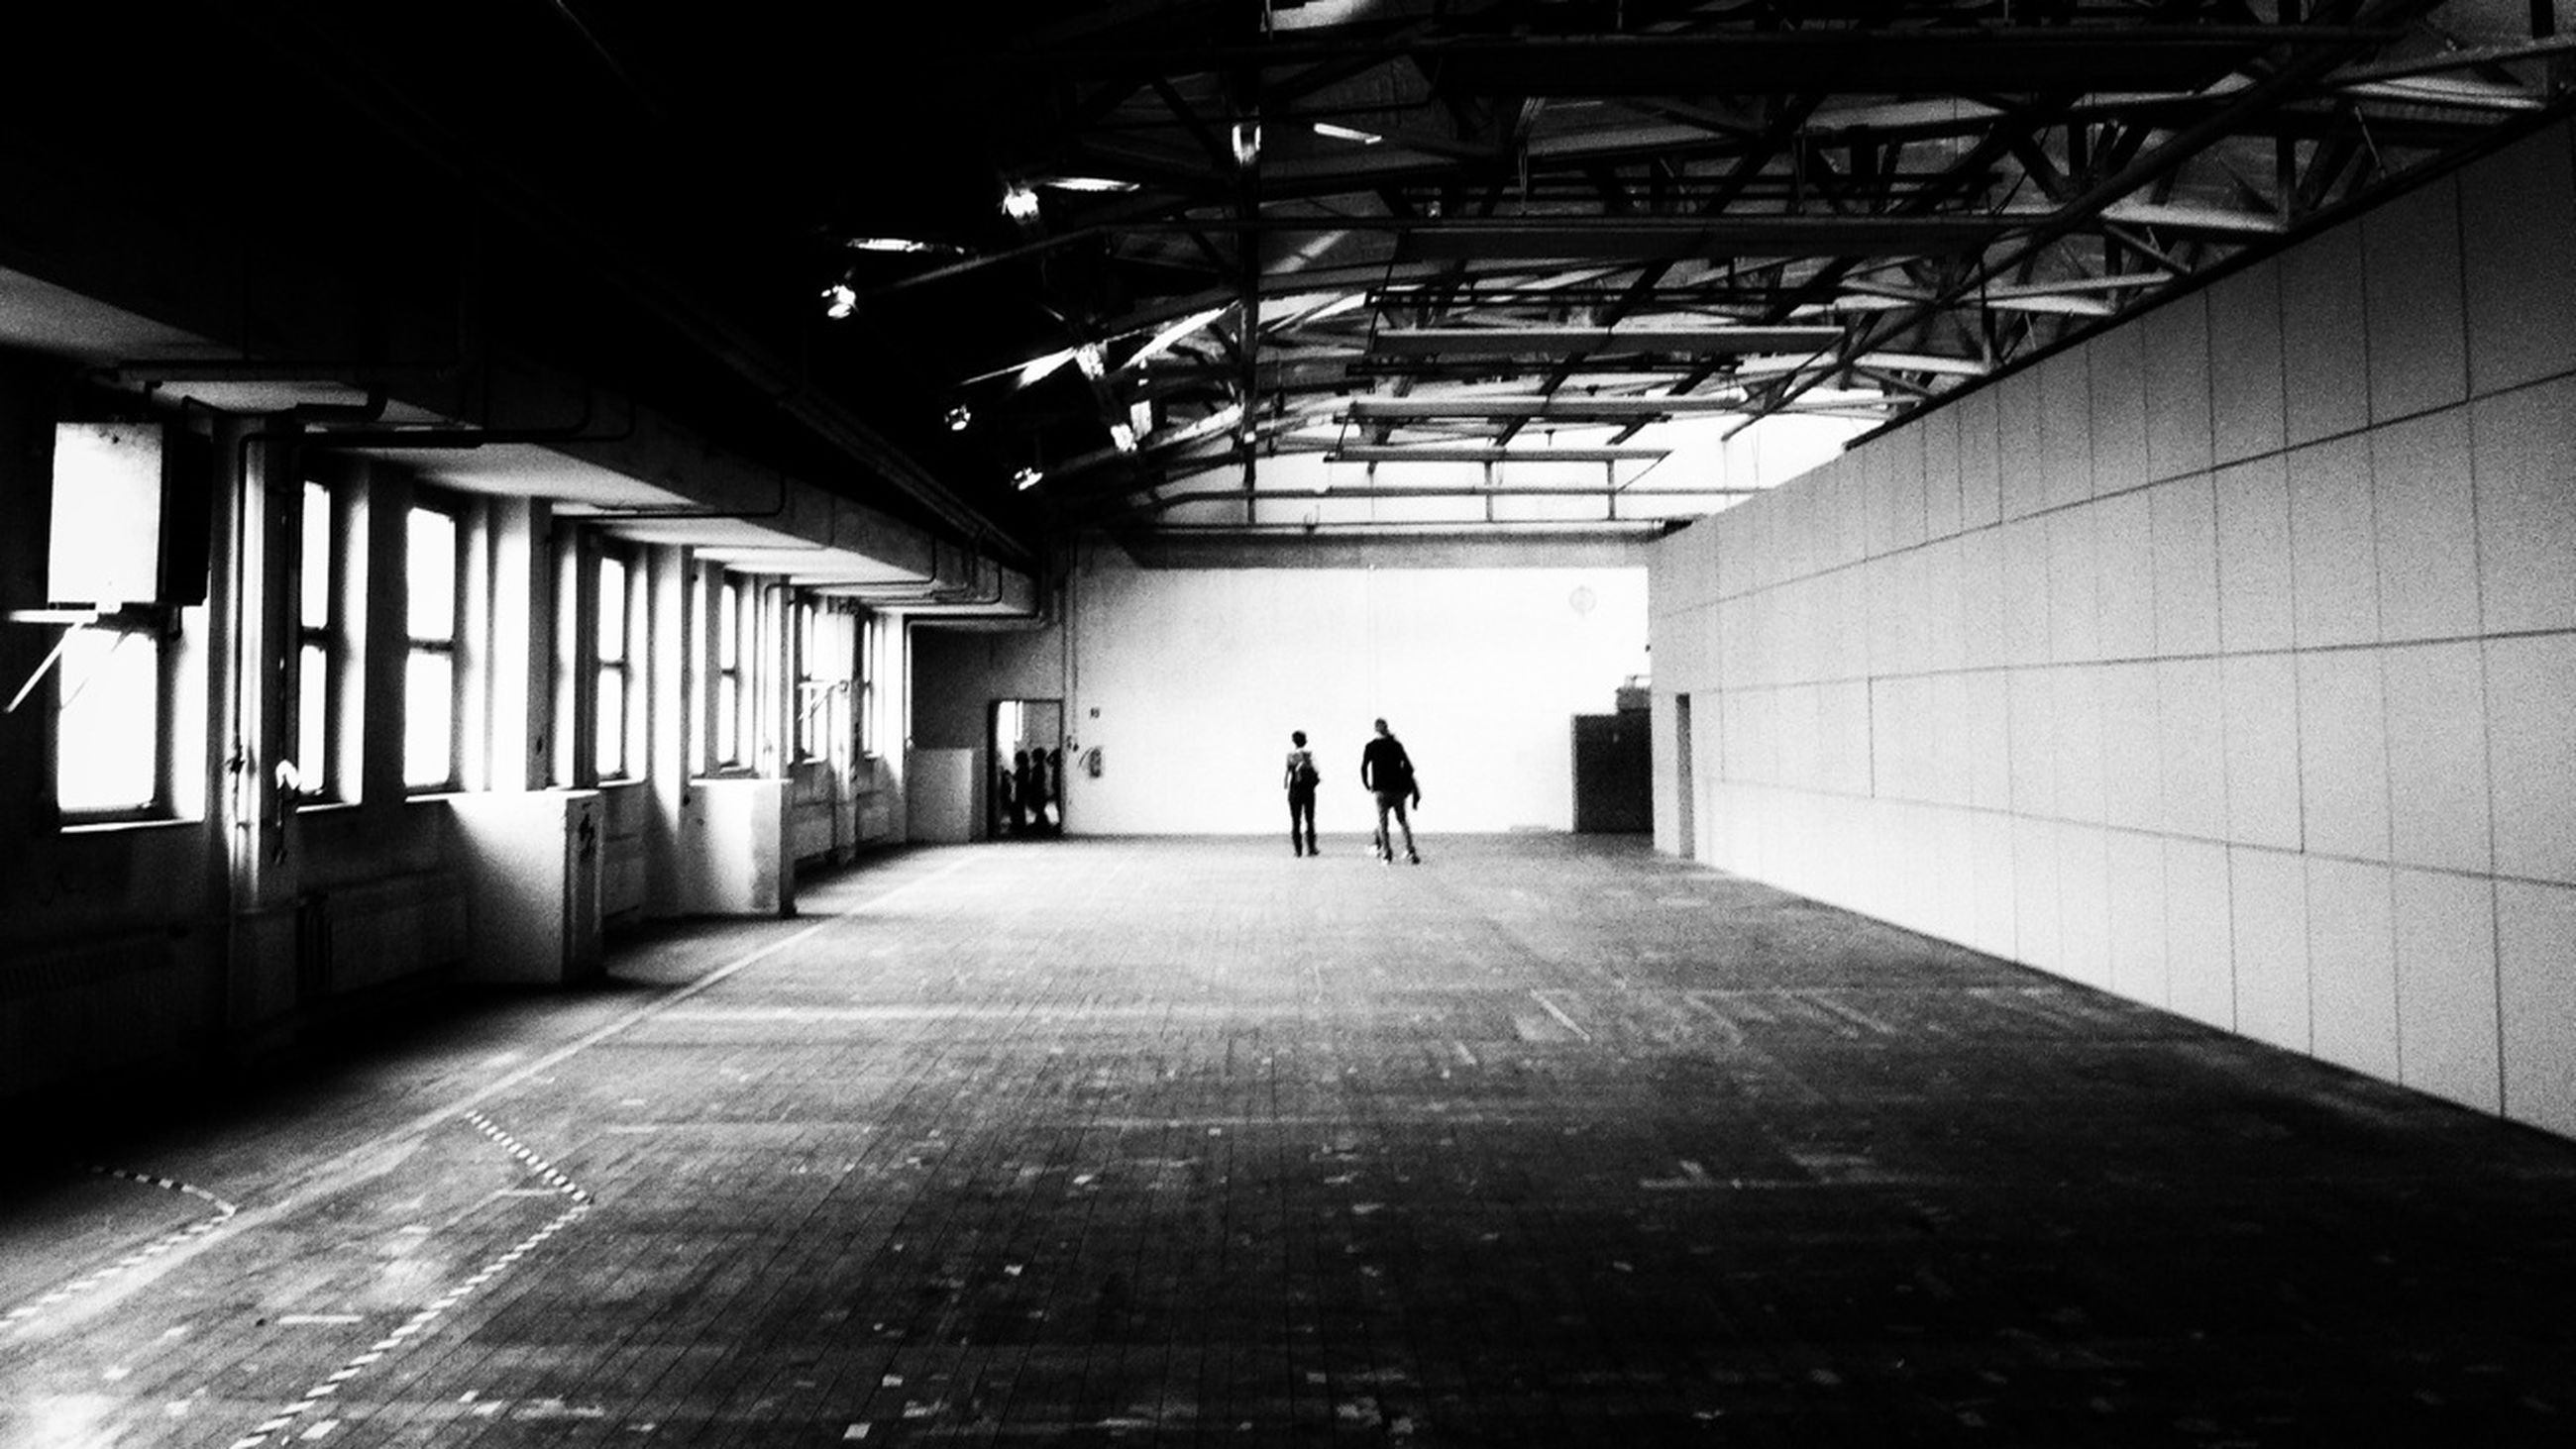 indoors, architecture, built structure, the way forward, corridor, ceiling, men, walking, full length, diminishing perspective, lifestyles, rear view, tunnel, silhouette, flooring, building, unrecognizable person, vanishing point